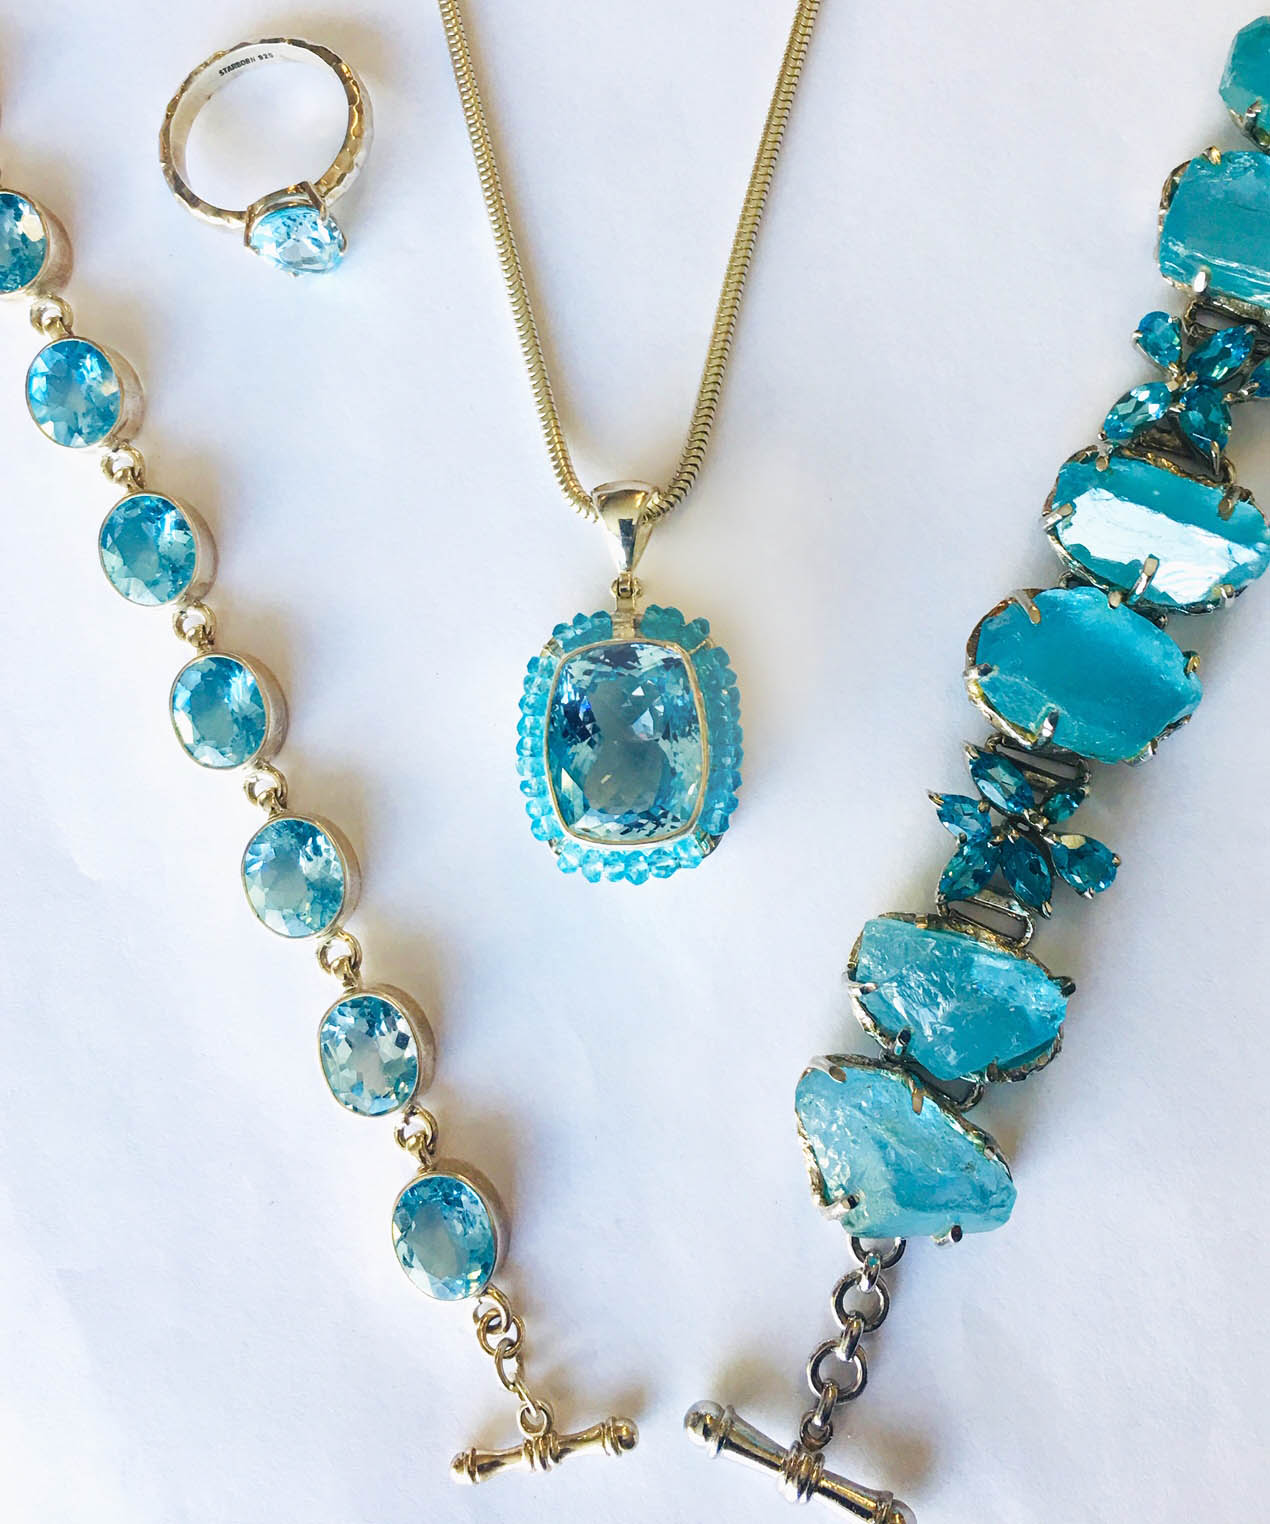 blue stone necklaces and ring